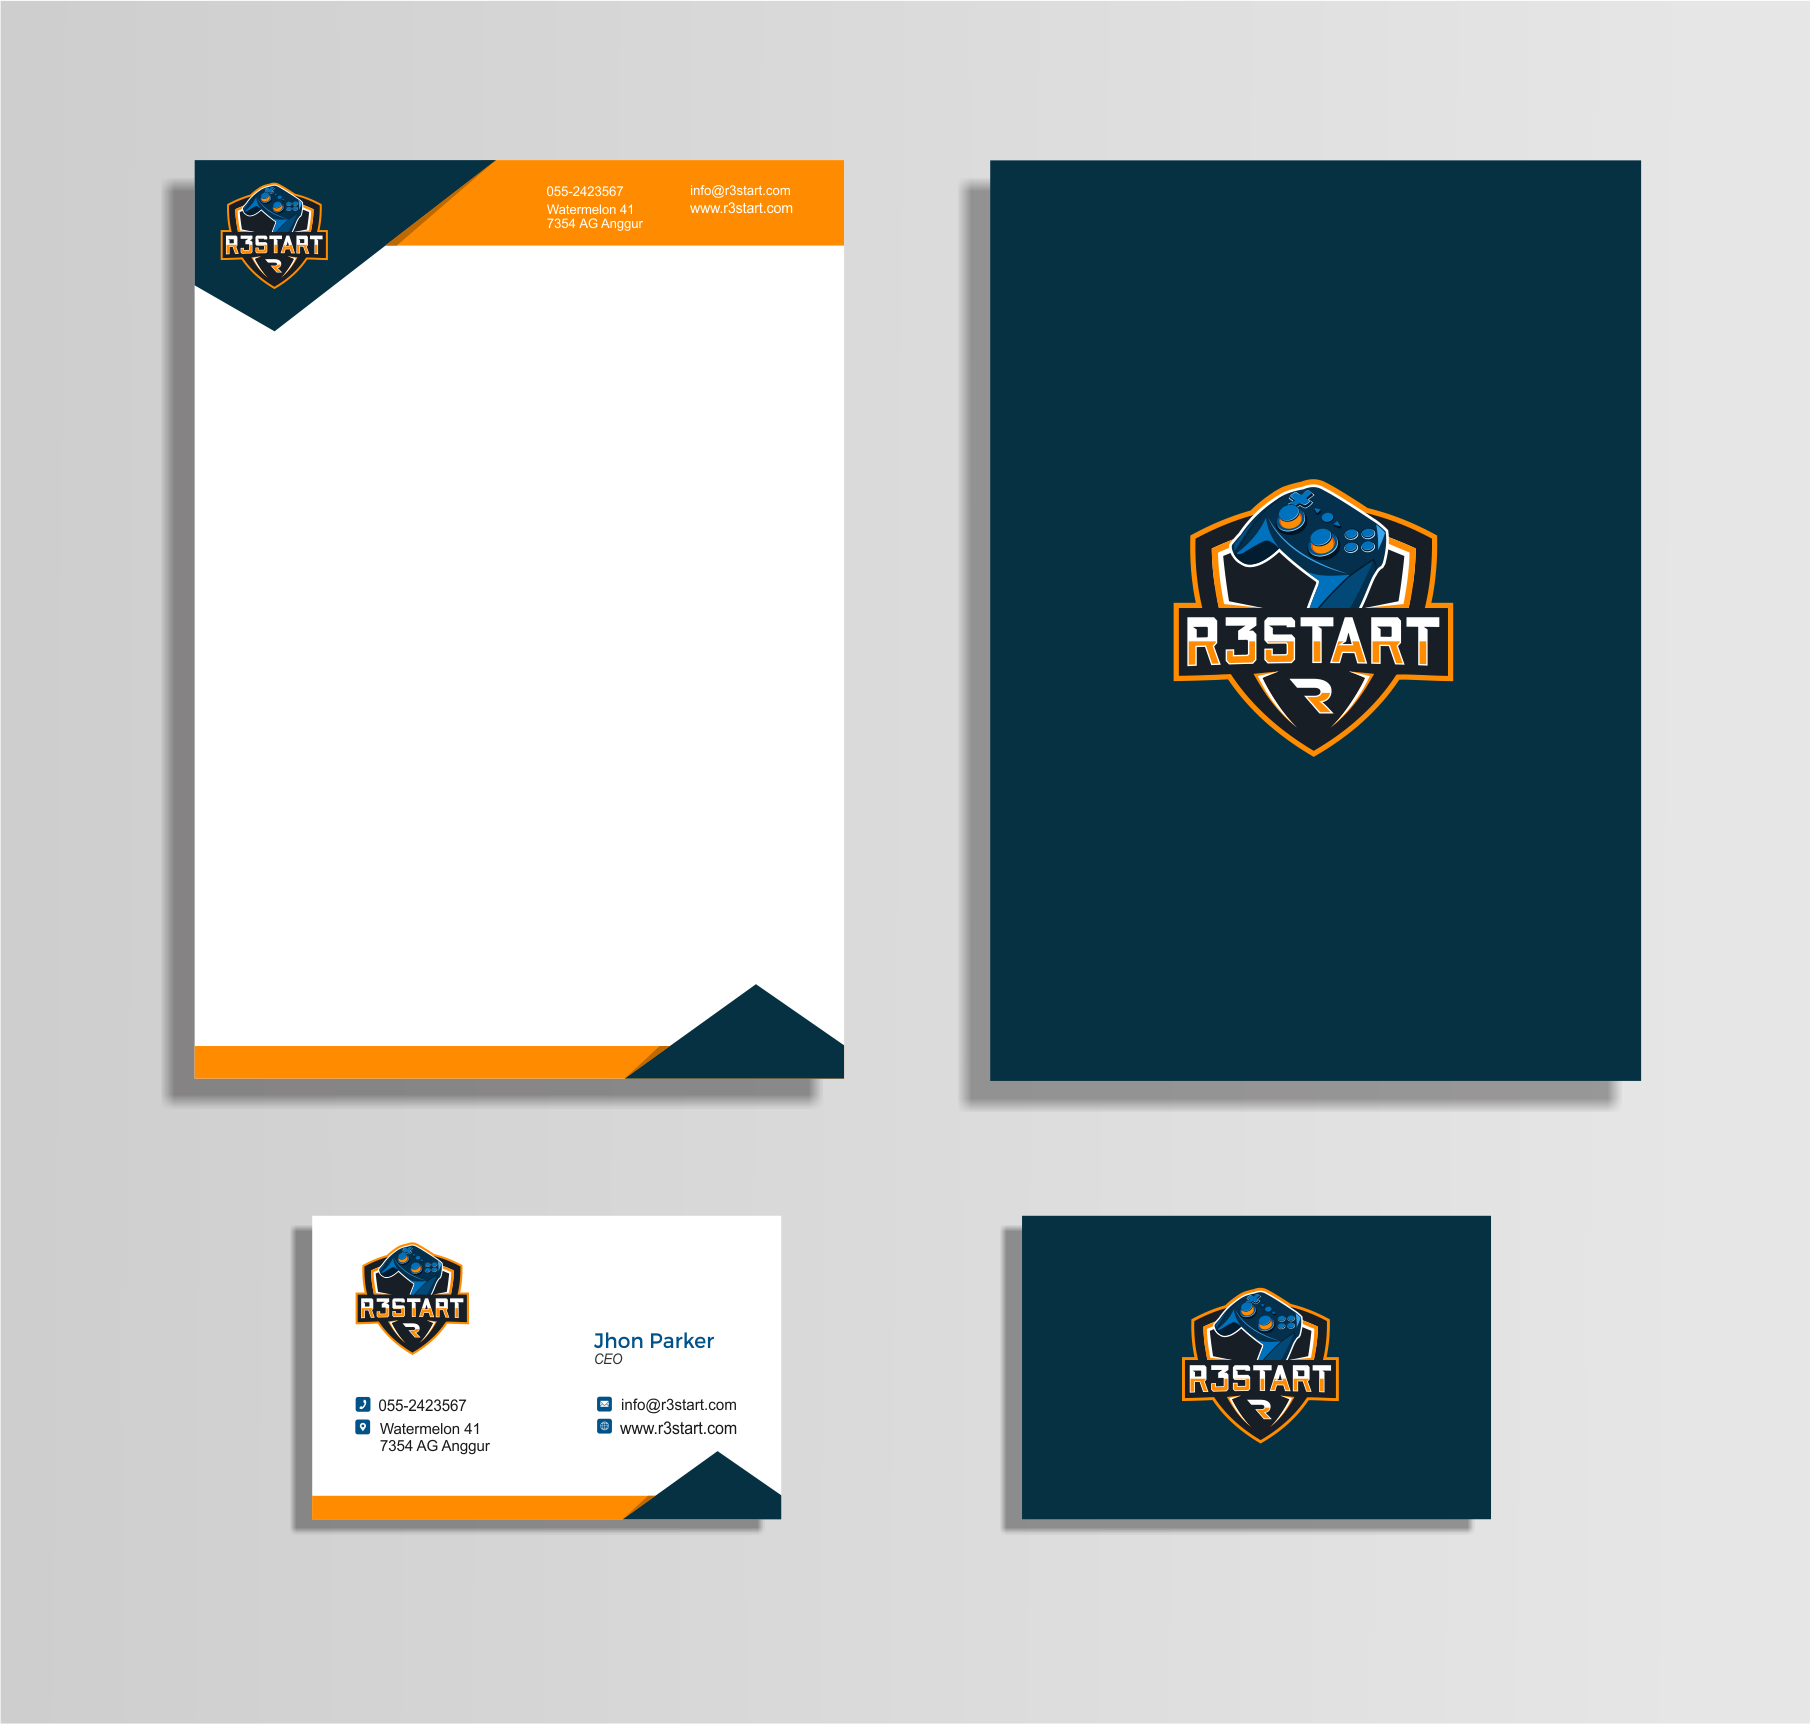 Corporate Design - Found Designer - No more designs needed, thanks for participation!